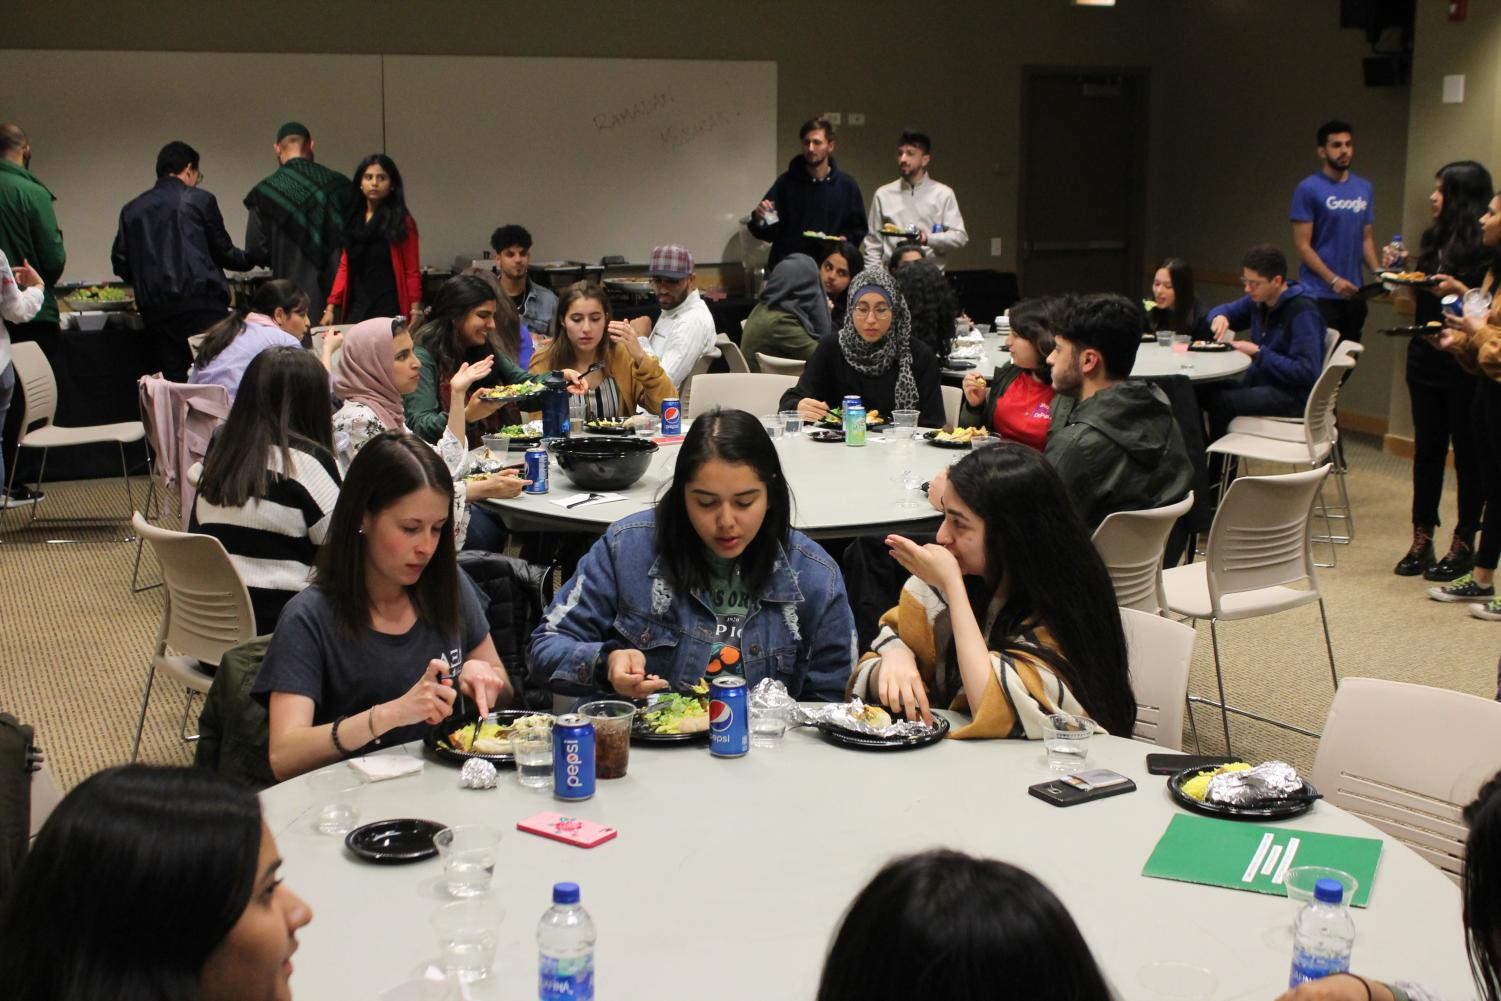 Students talk to one another before breaking fast.